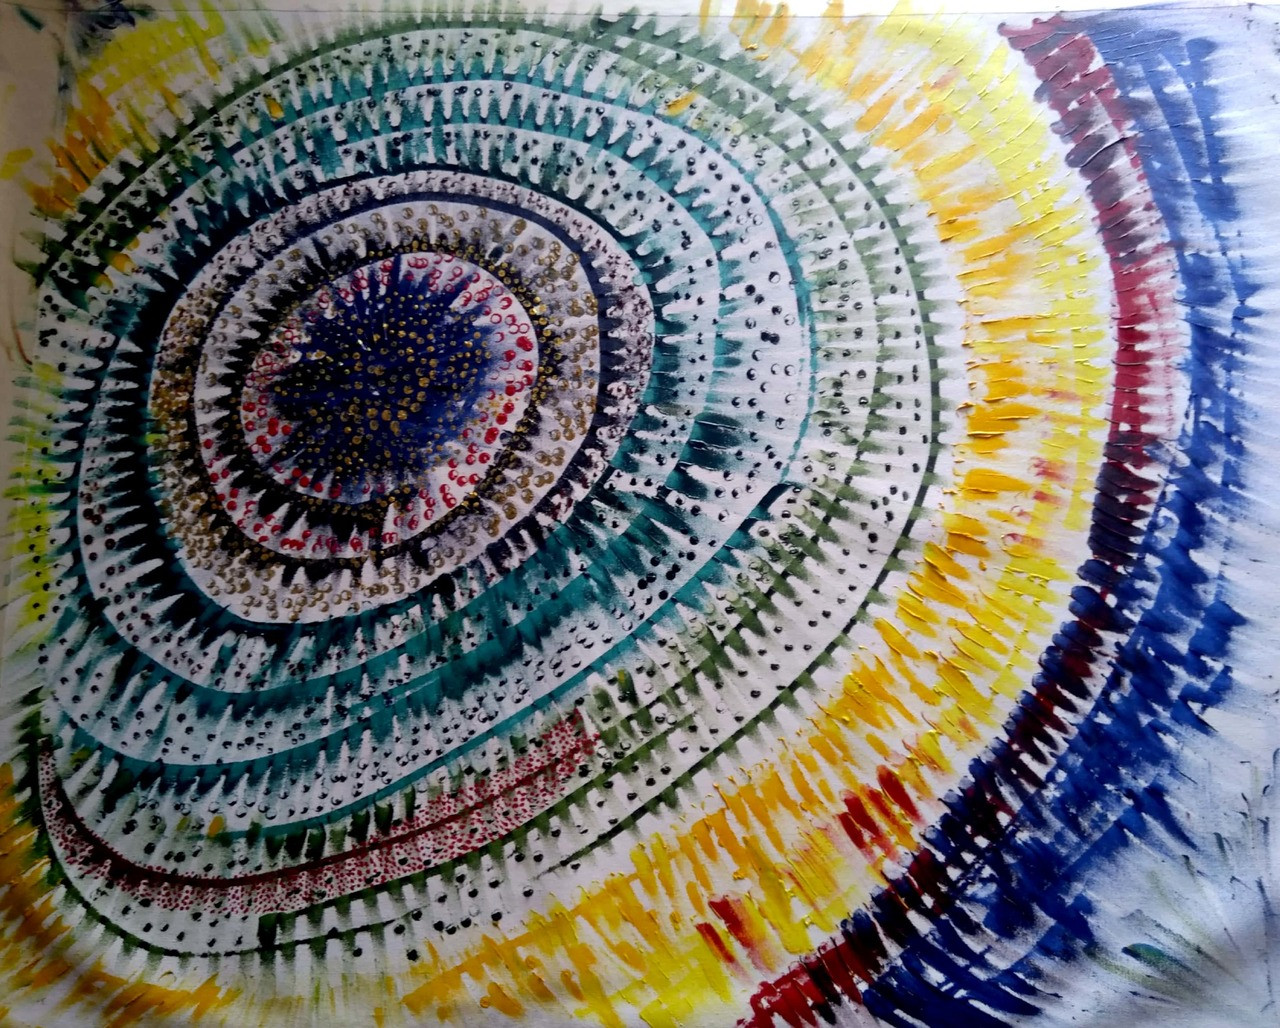 Abstract Colorful Galaxy Mandala Art 5700 32813 Handpainted Art Painting 36in X 30in